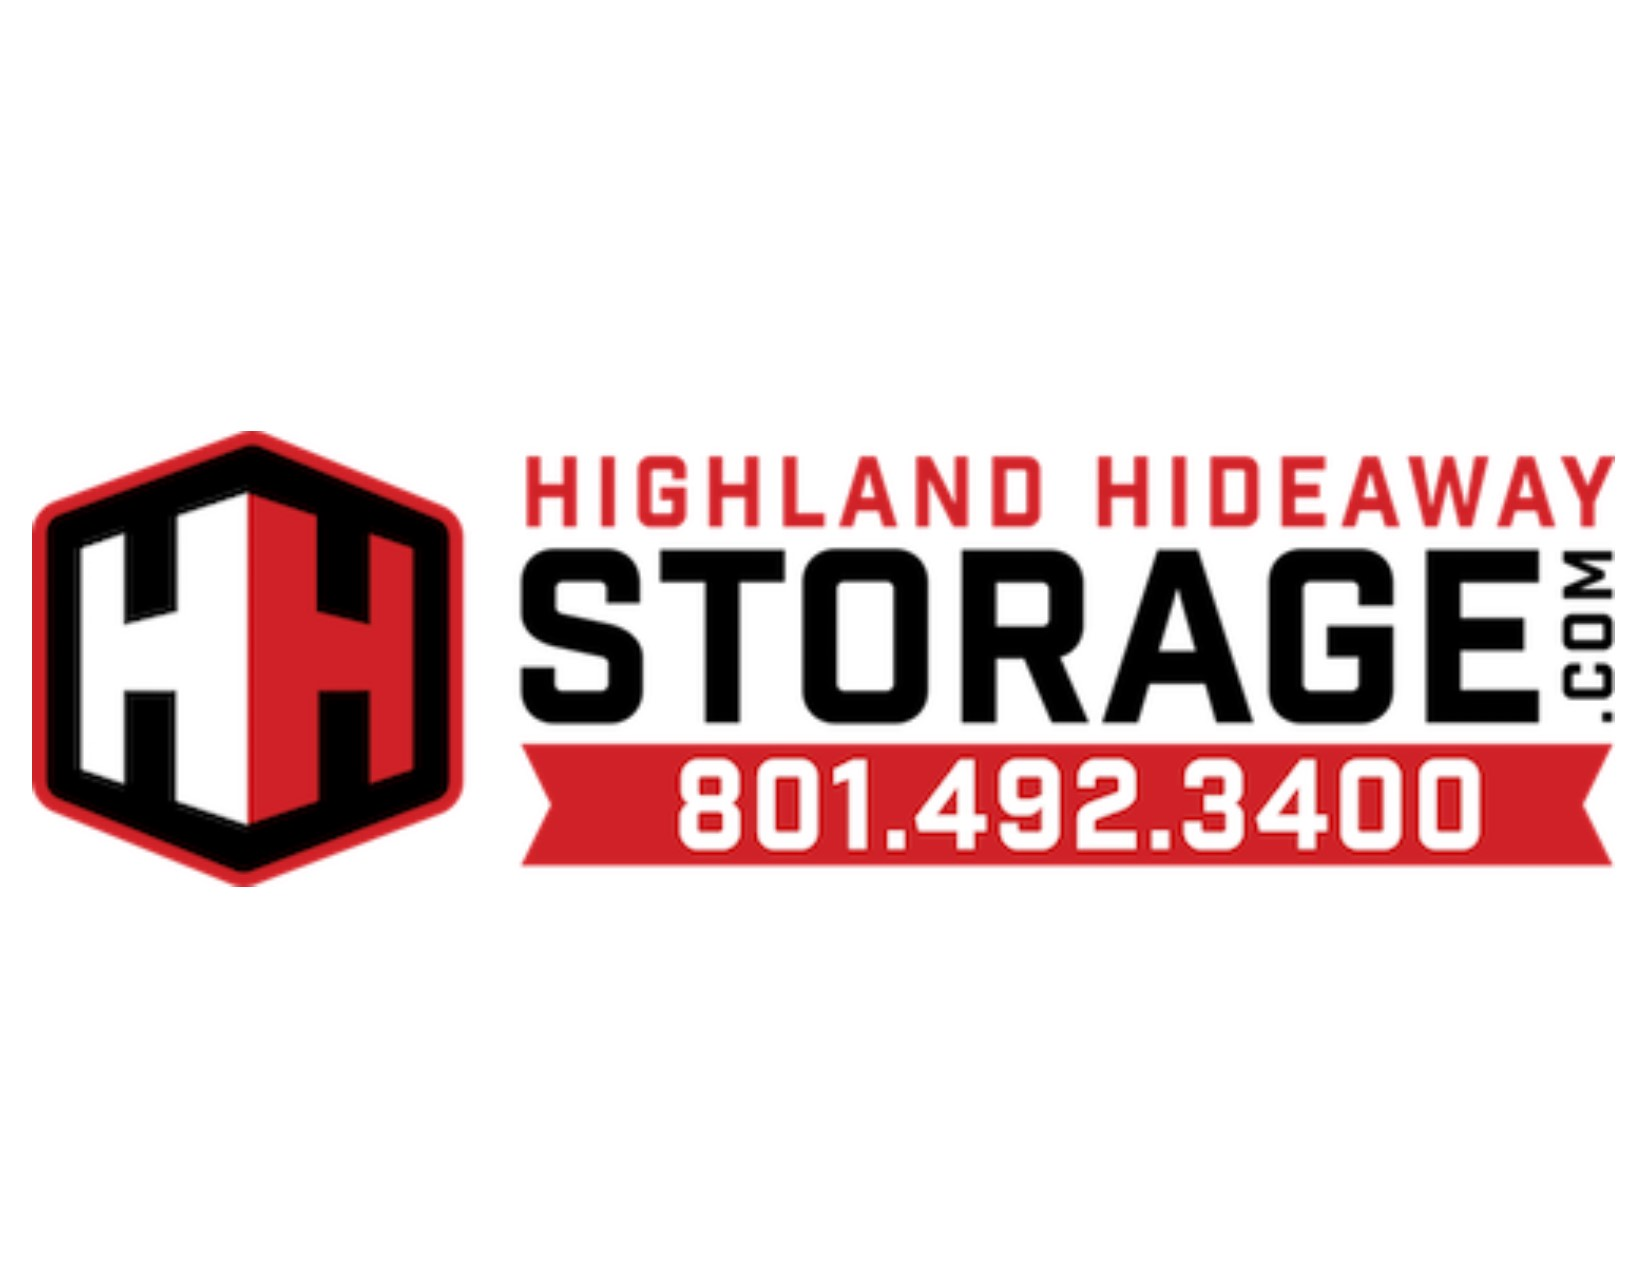 Highland Hideaway Storage 801.492.3400 Opens in new window